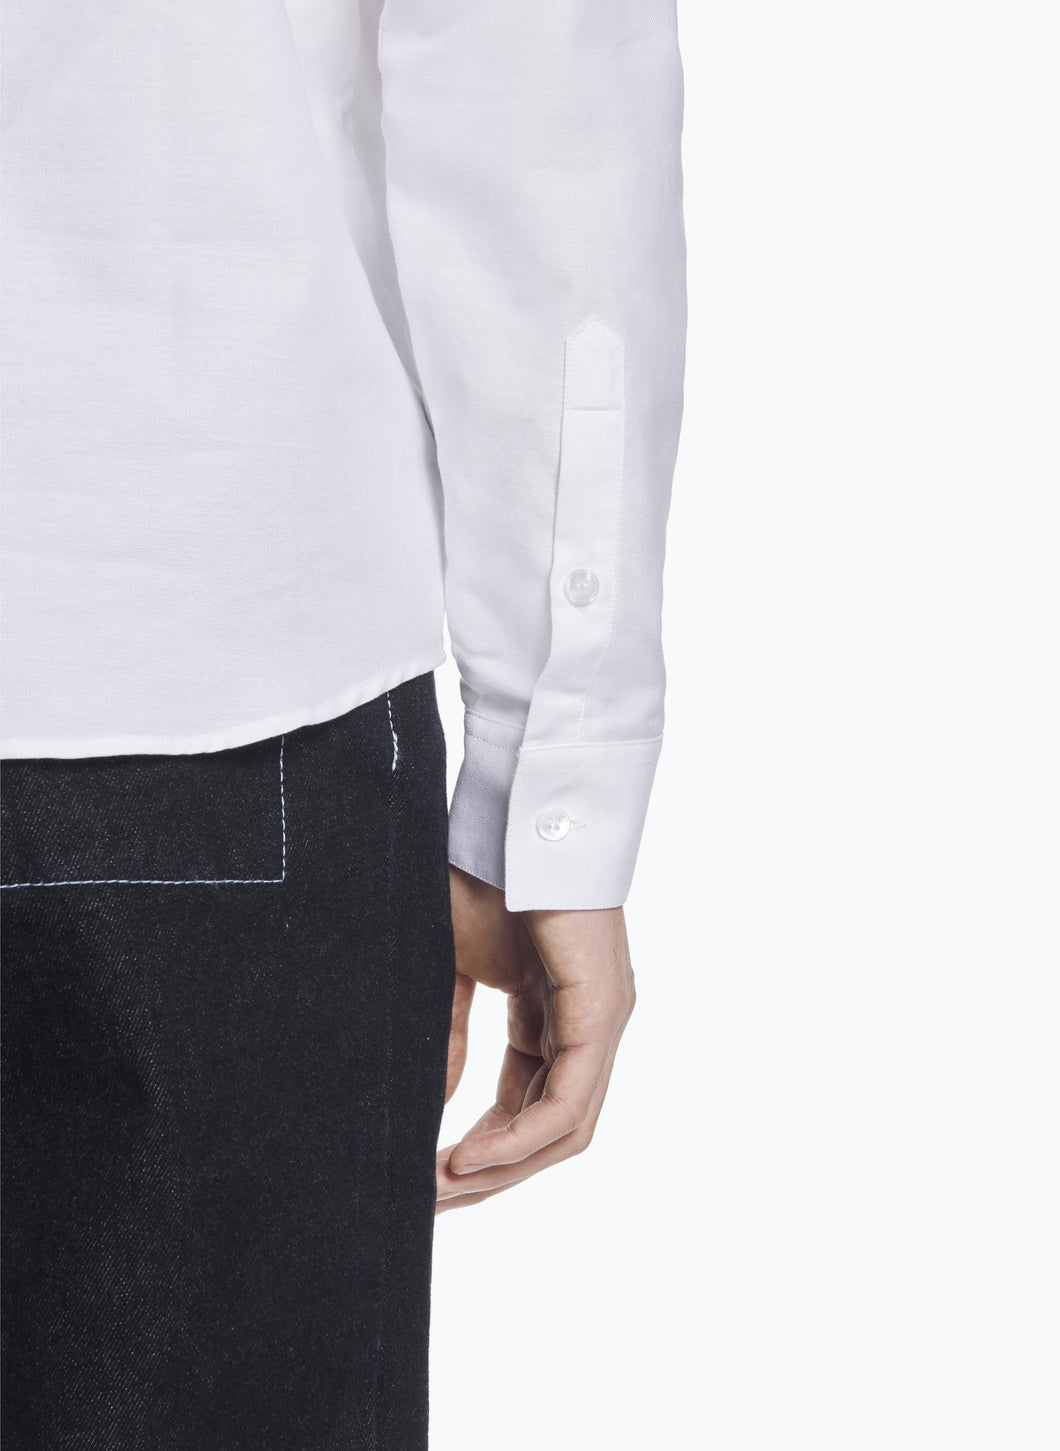 Raglan Sleeve Shirt in White Oxford